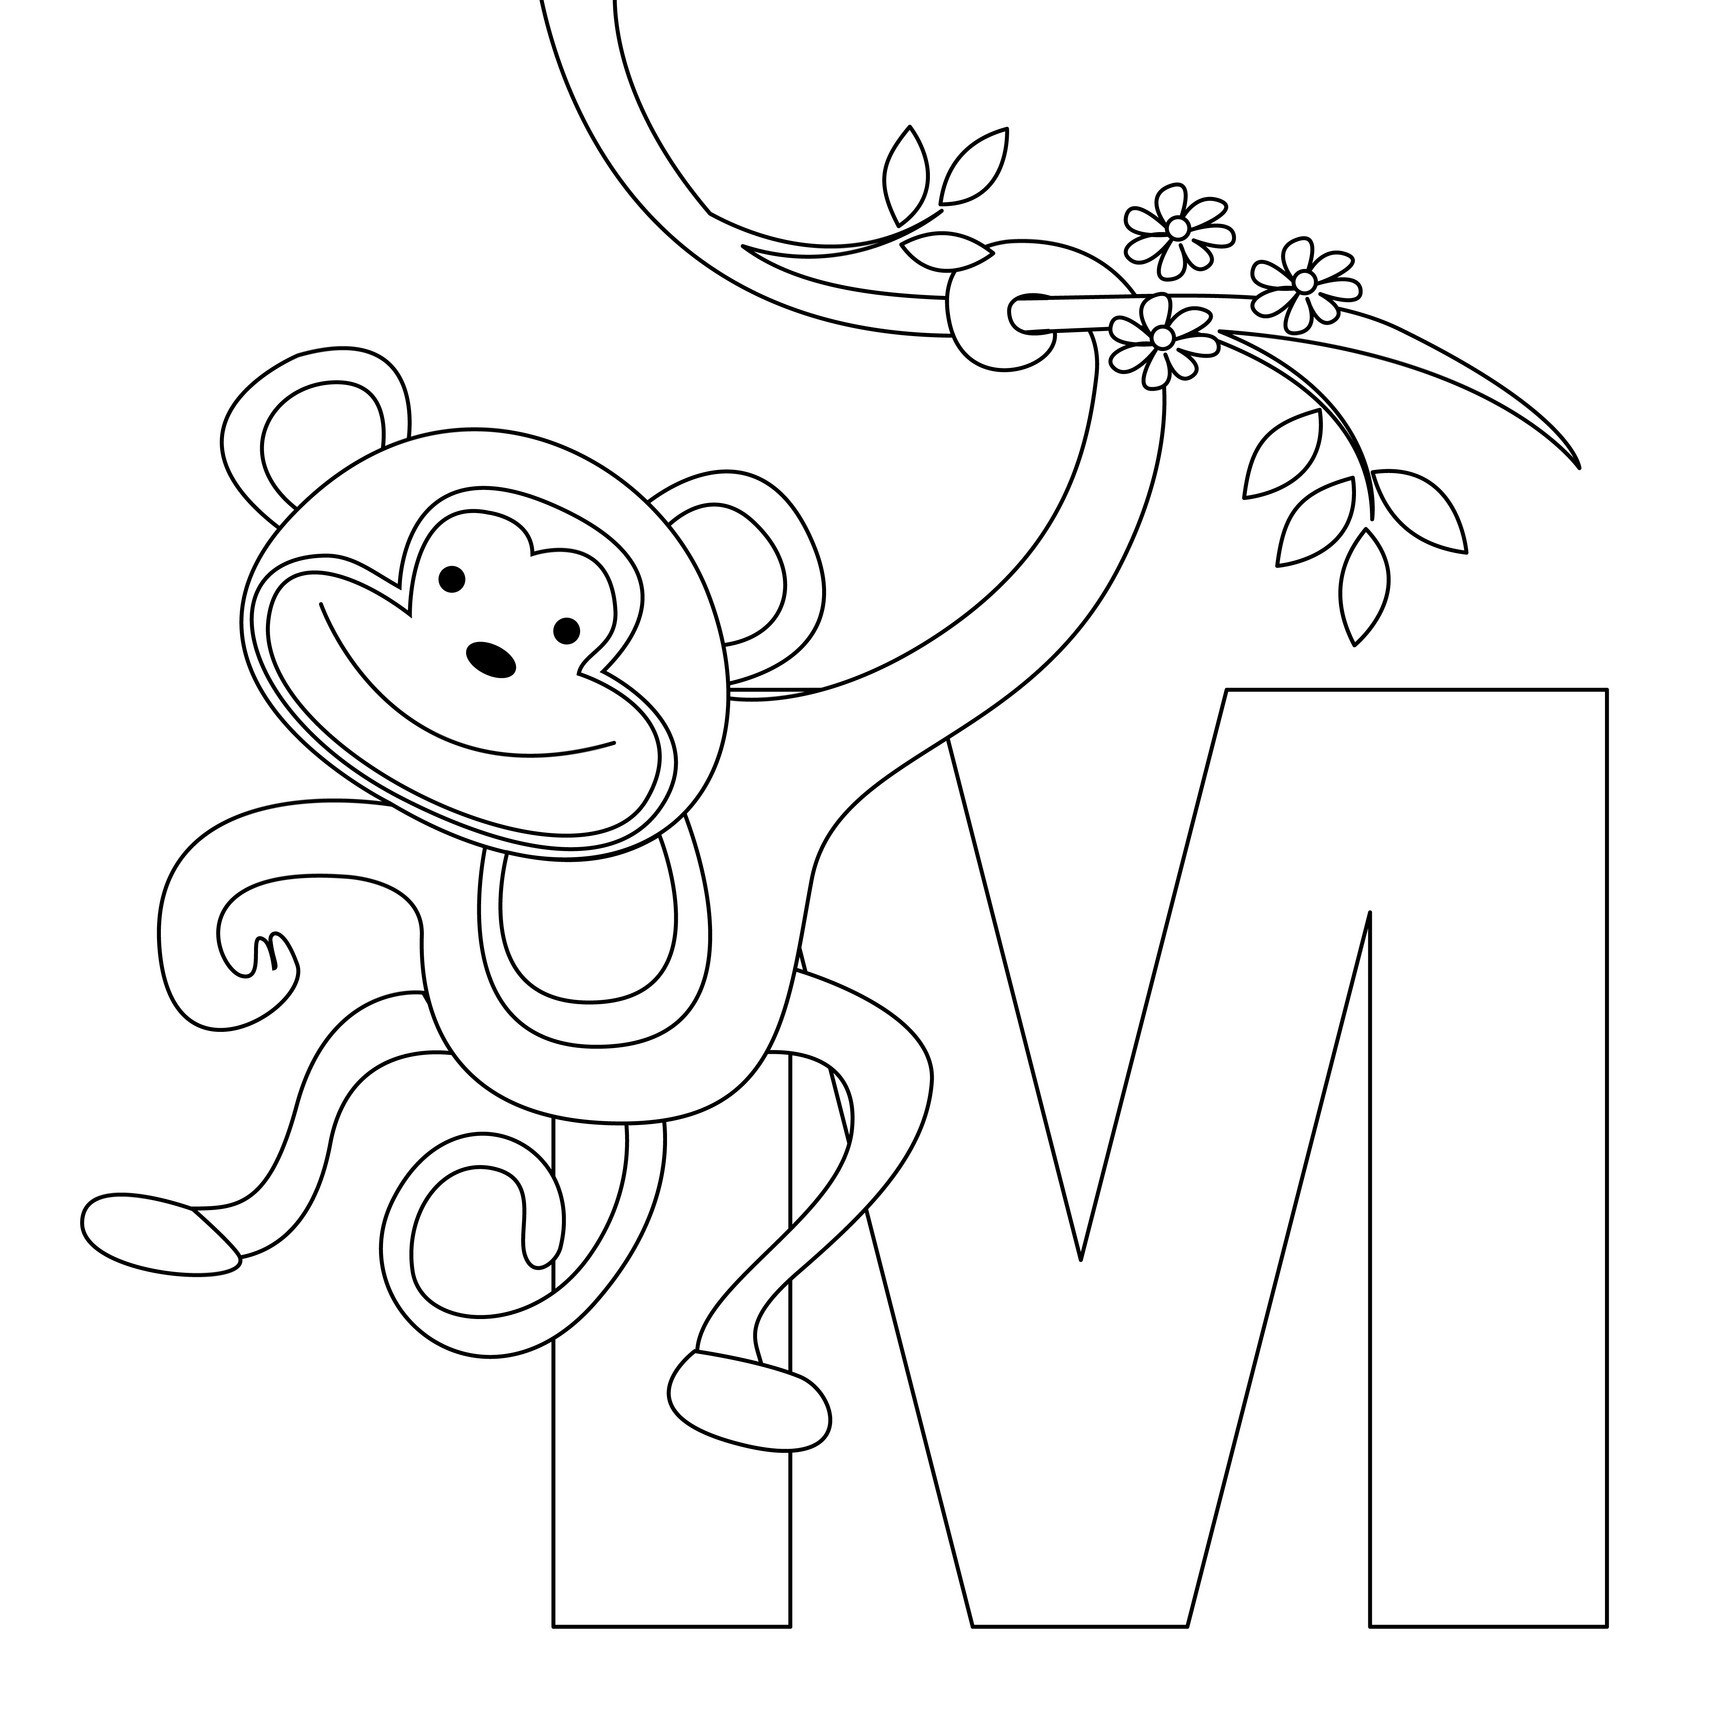 coloring printable m letter images free printable alphabet coloring pages for kids best coloring m printable images letter